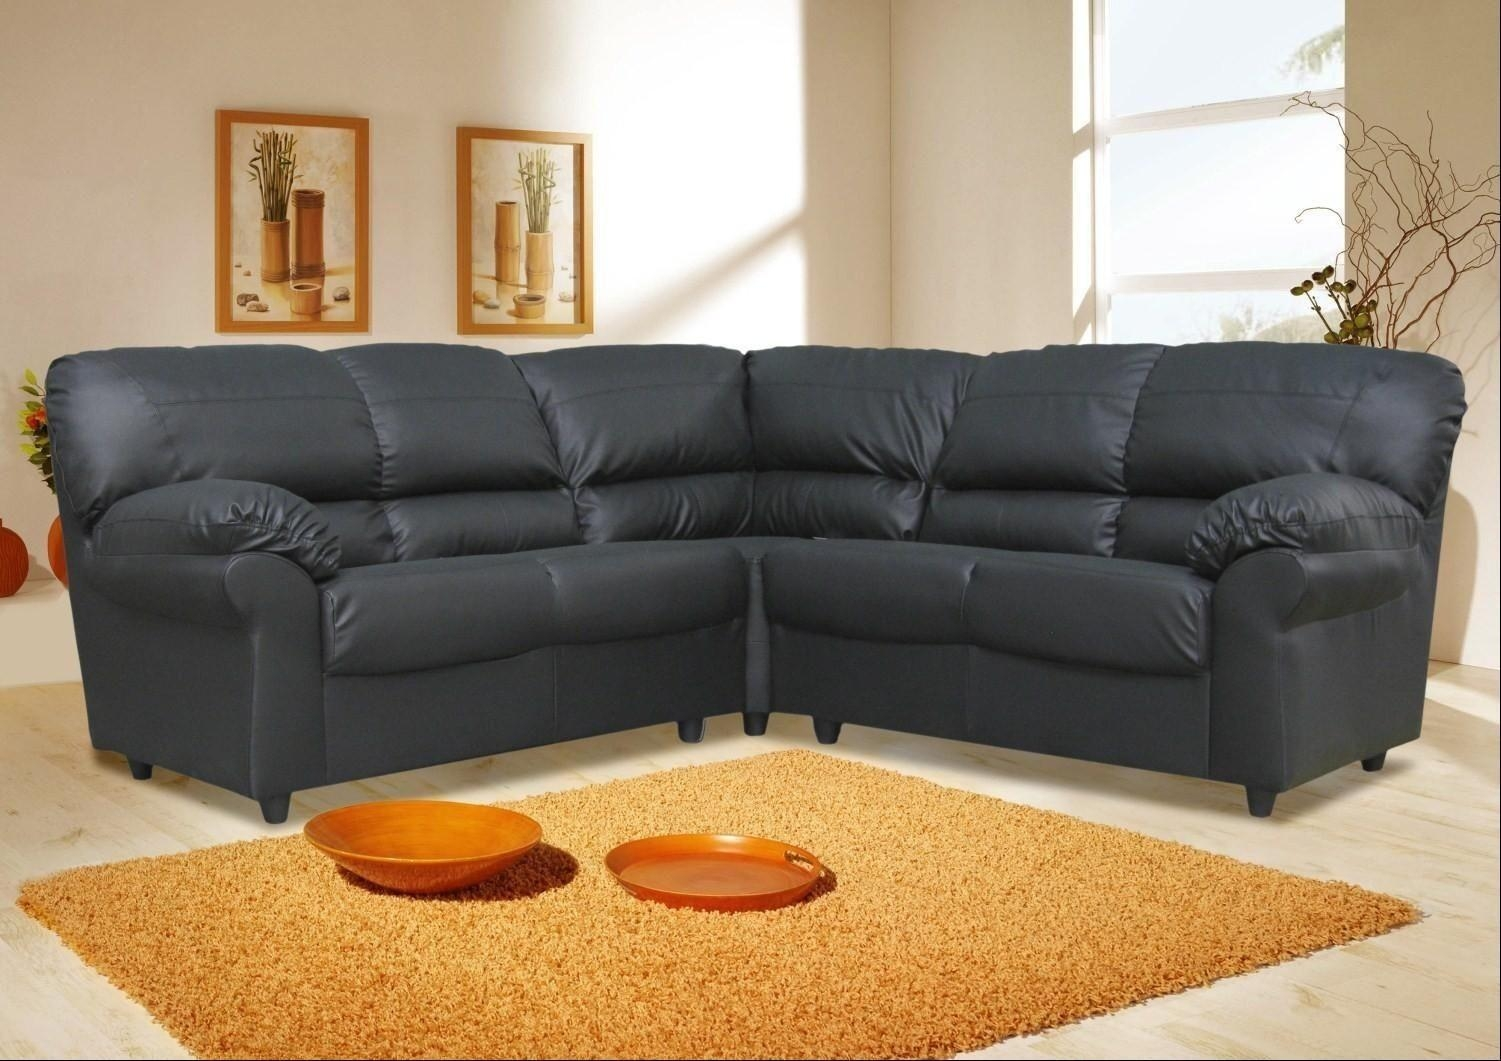 Sofas Center : Leather Corner Sofa Striking Photos Concept Sofas In Leather Corner Sofas (Image 18 of 20)